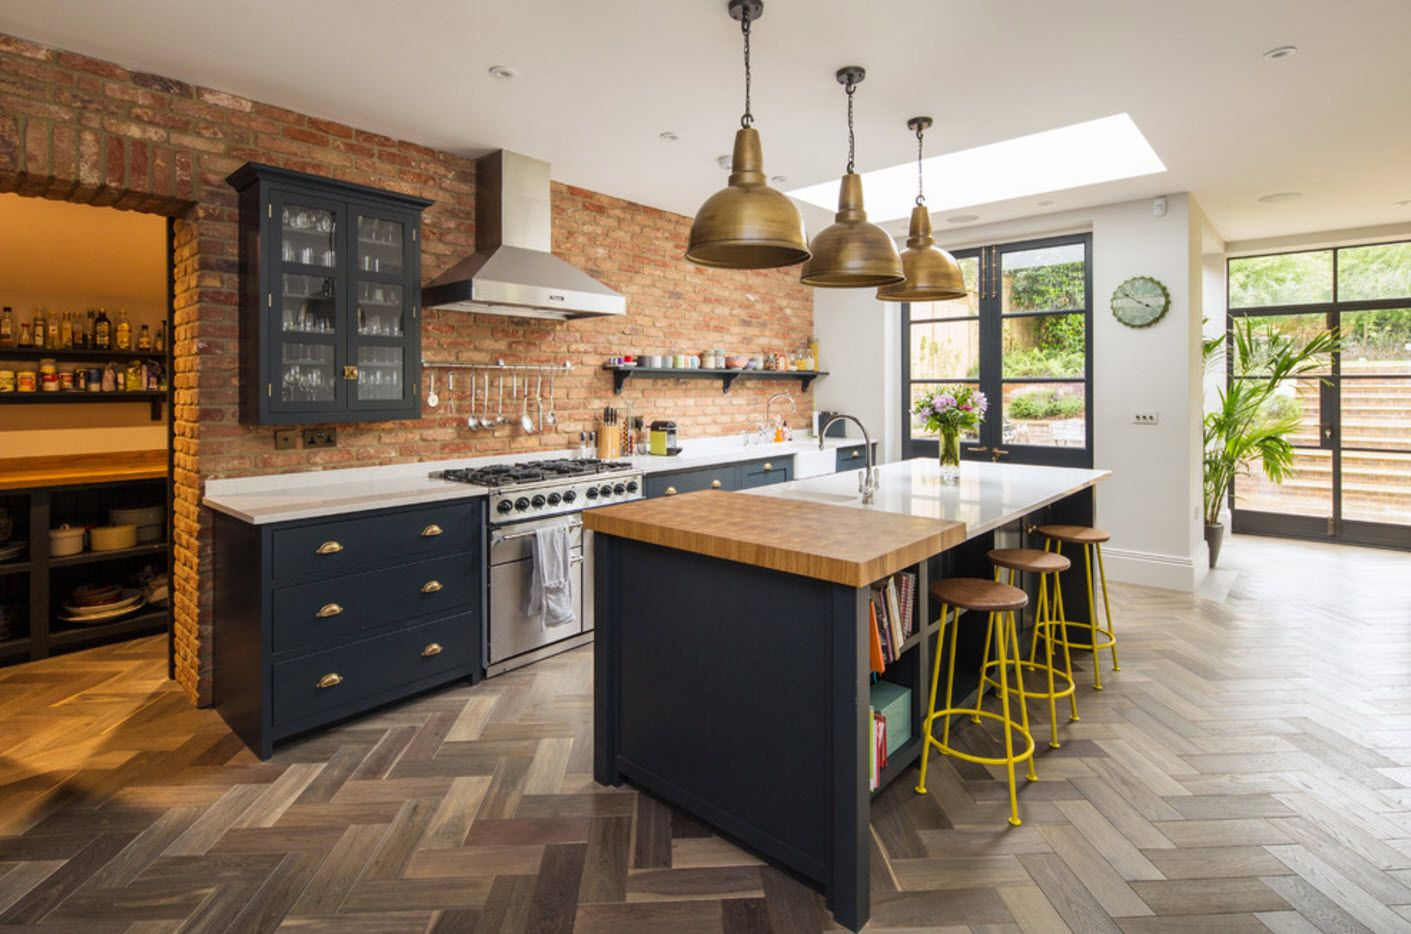 Modern mix of design styles in the galley kitchen